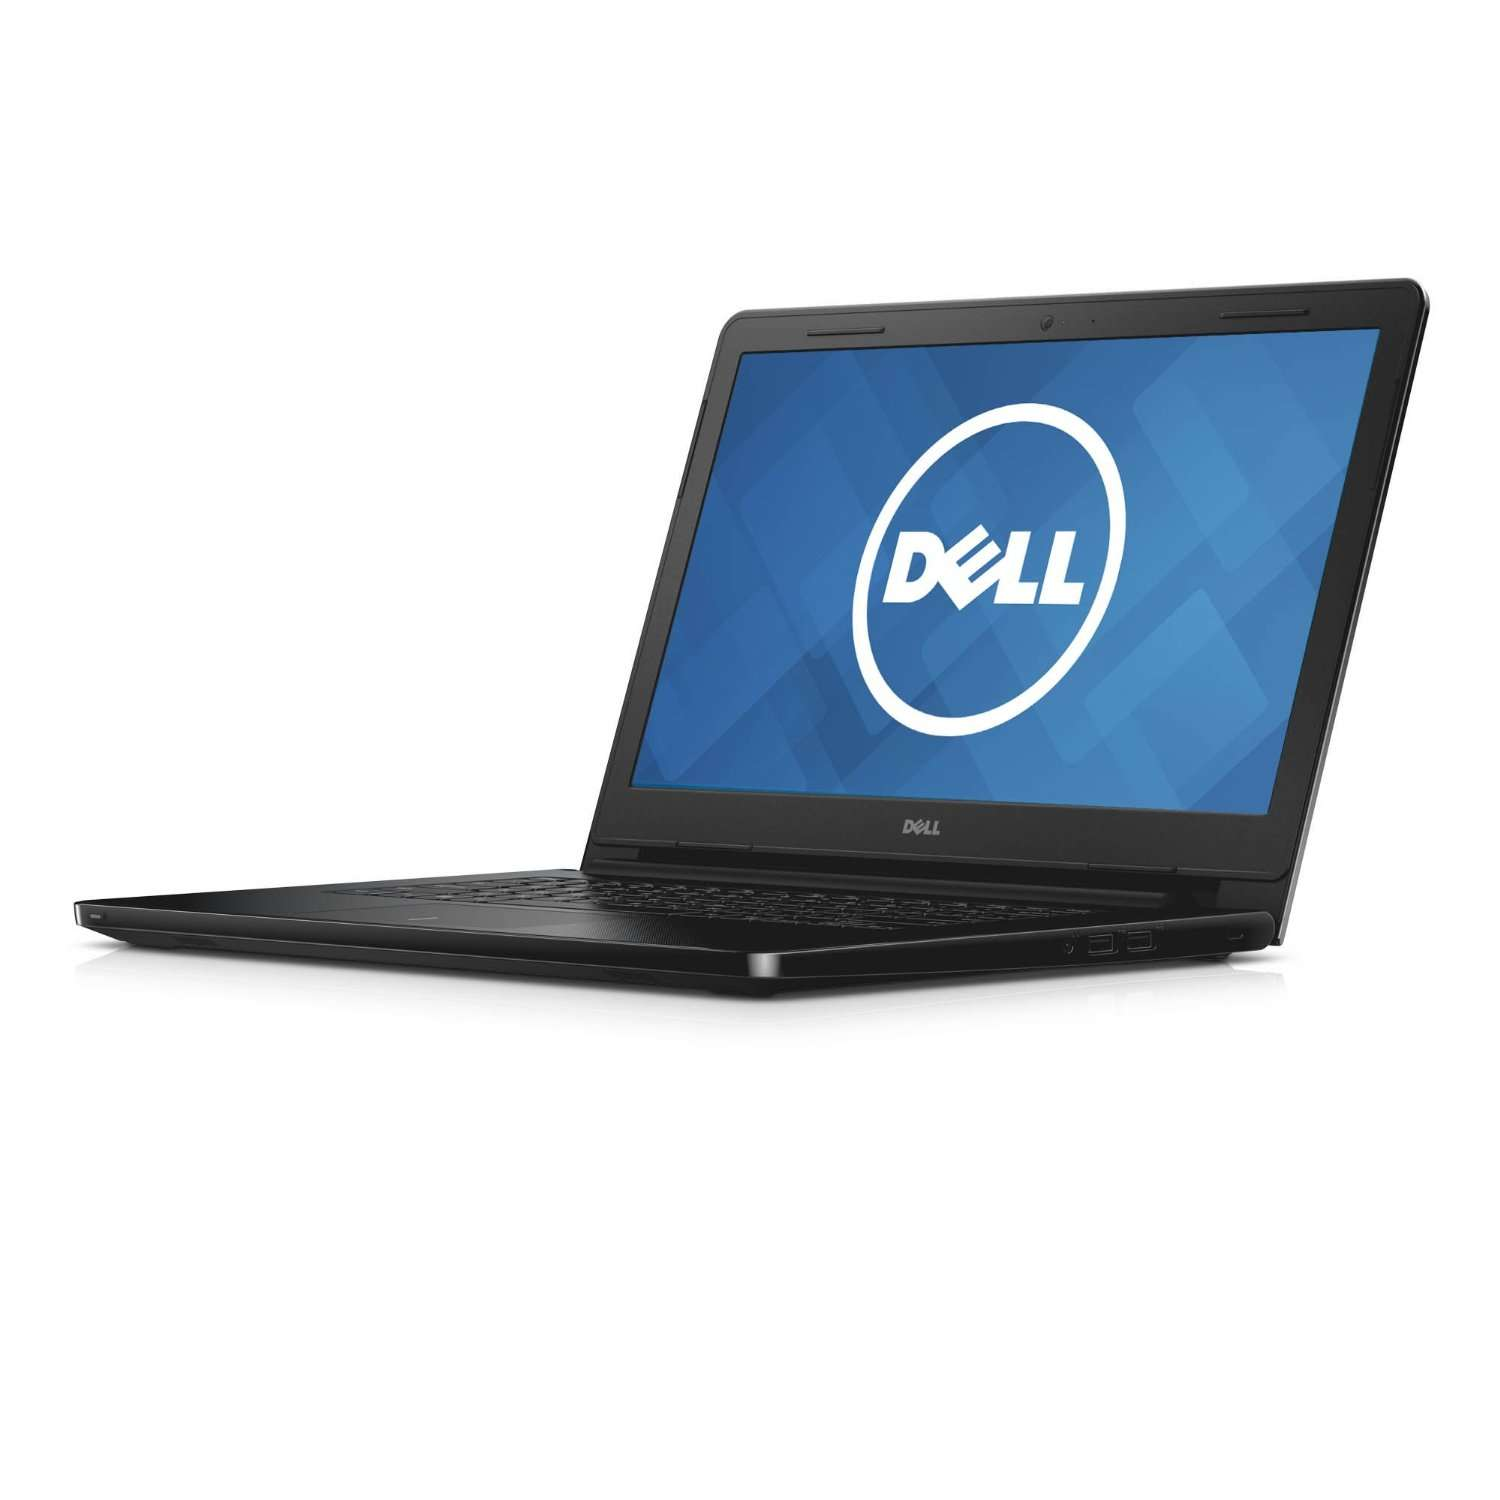 Dell Inspiron N3458 (Core i5-5200U, RAM 4GB, HDD 500GB, VGA 2GB NVIDIA GeForce 820M, 14 inch)